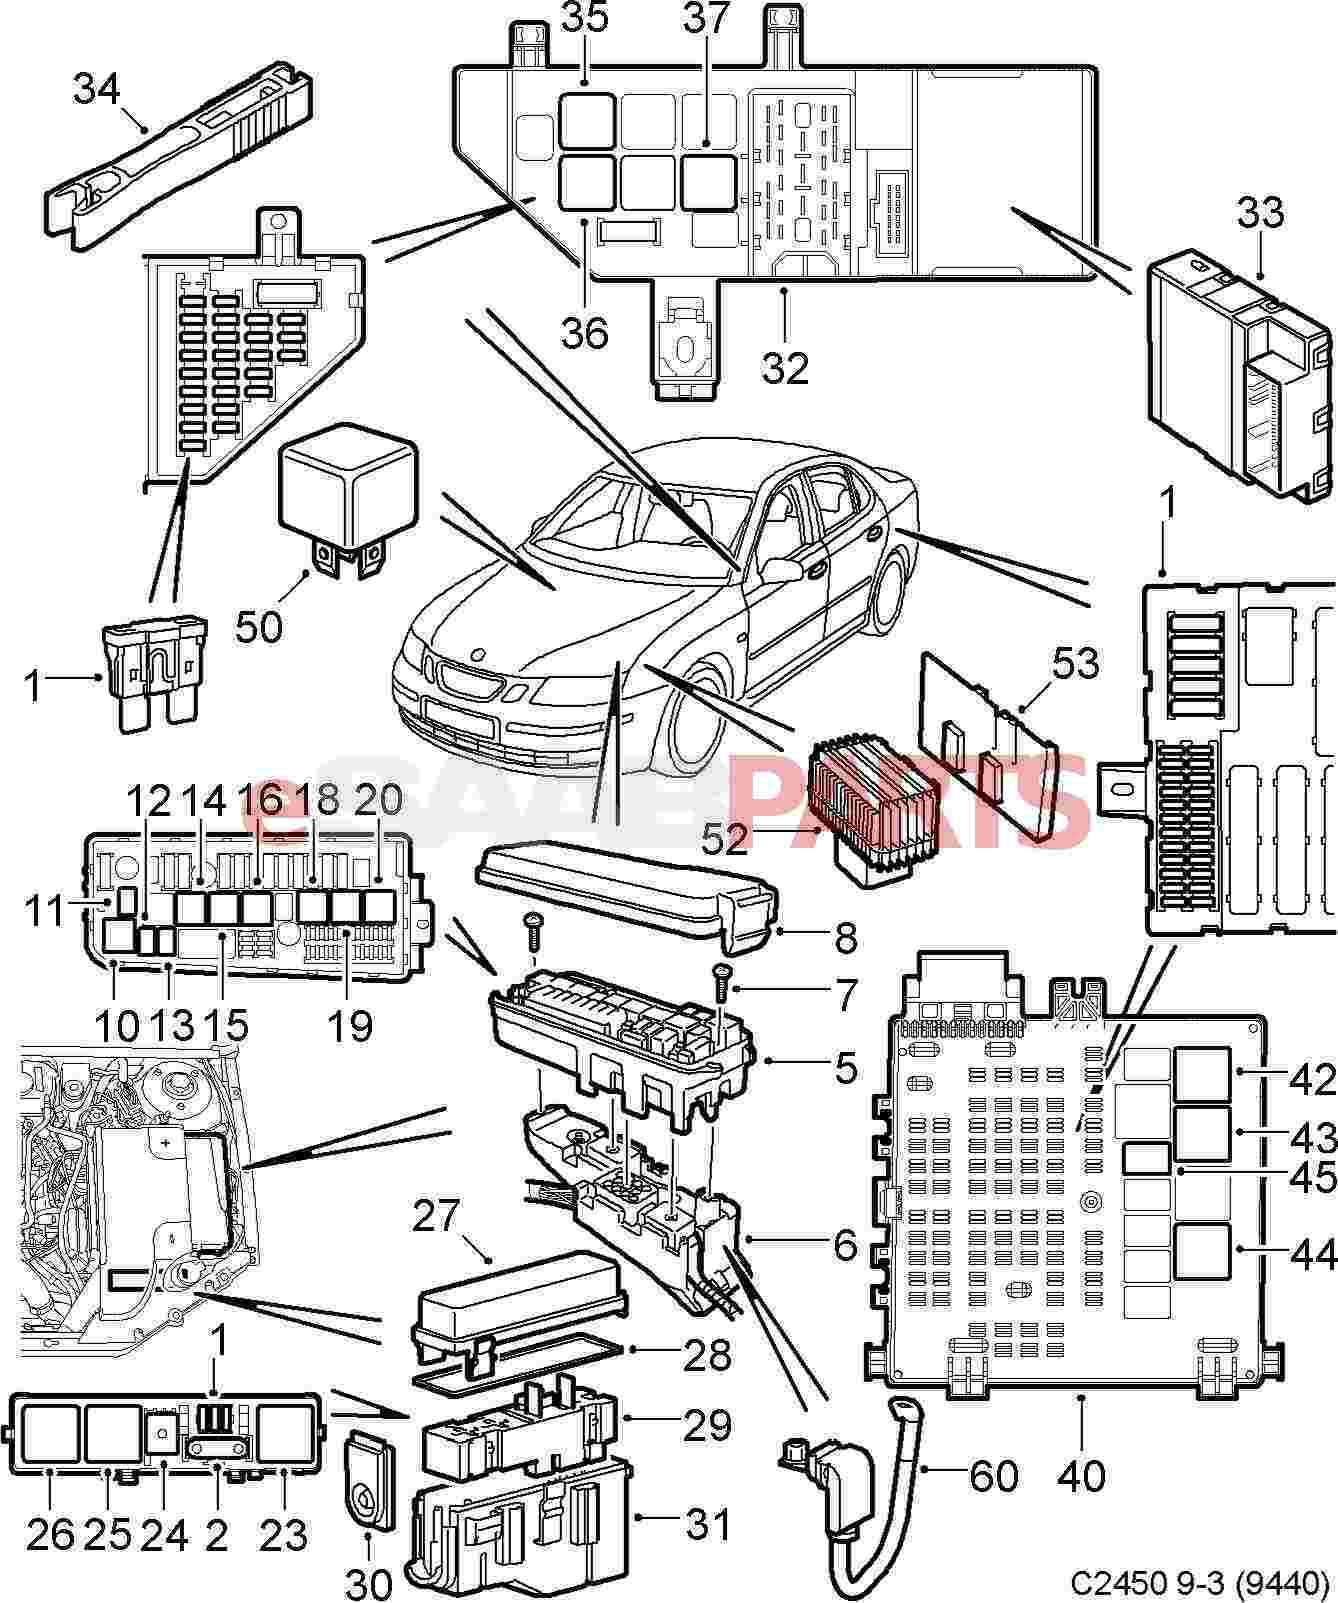 13266316 saab relay genuine saab parts from esaabparts